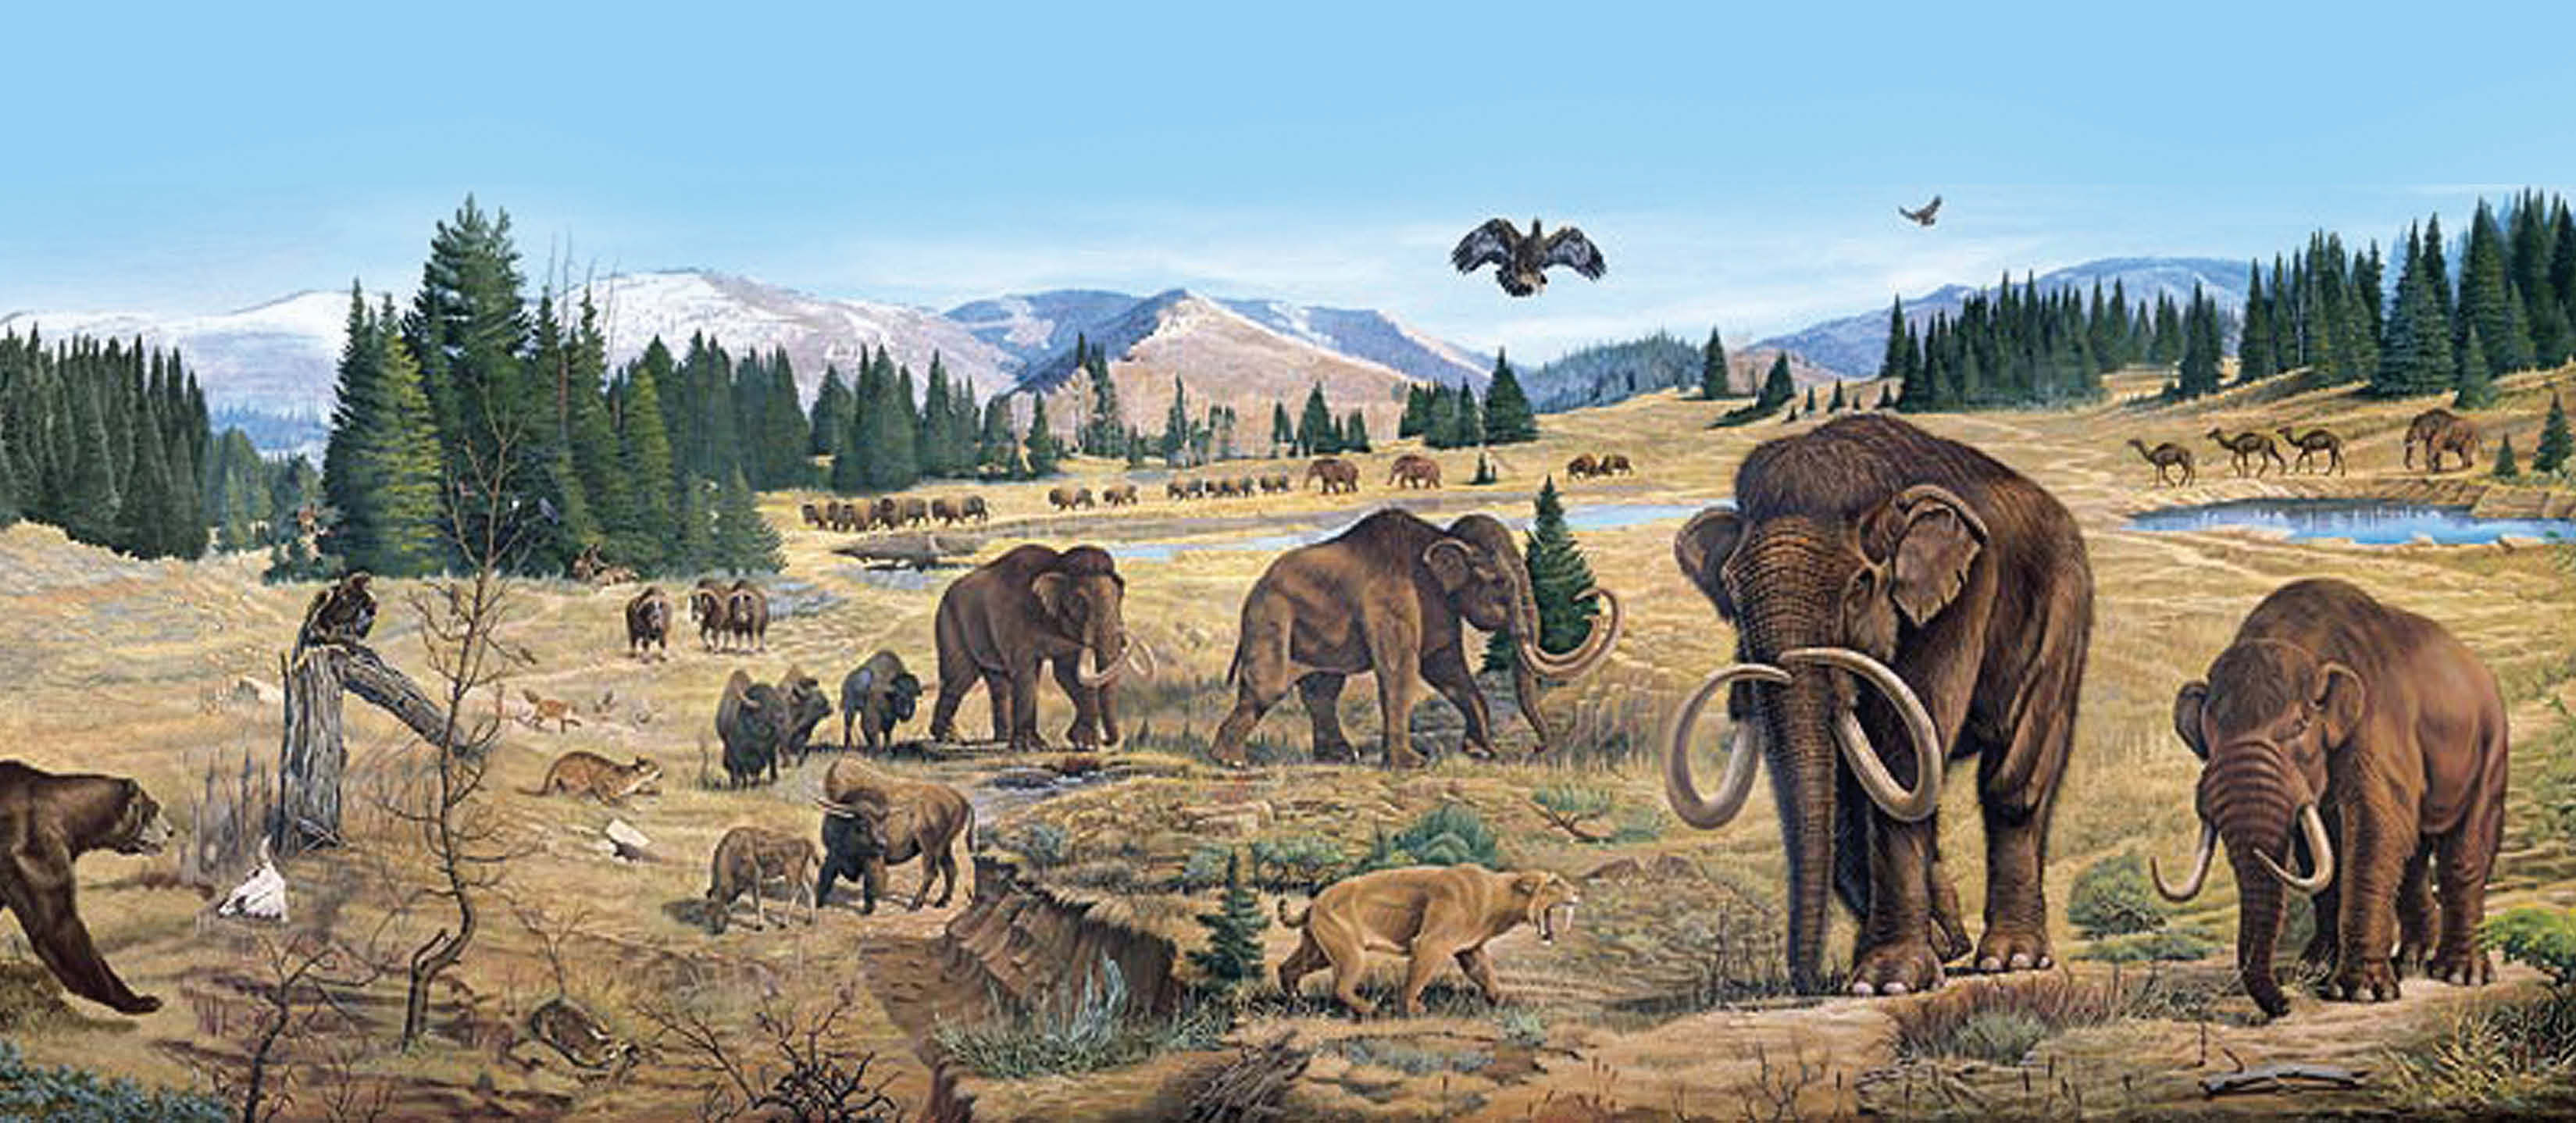 Detail of late Pleistocene life in central Utah from a mural painted by Joe Venus at the College of Eastern Utah Prehistoric Museum.